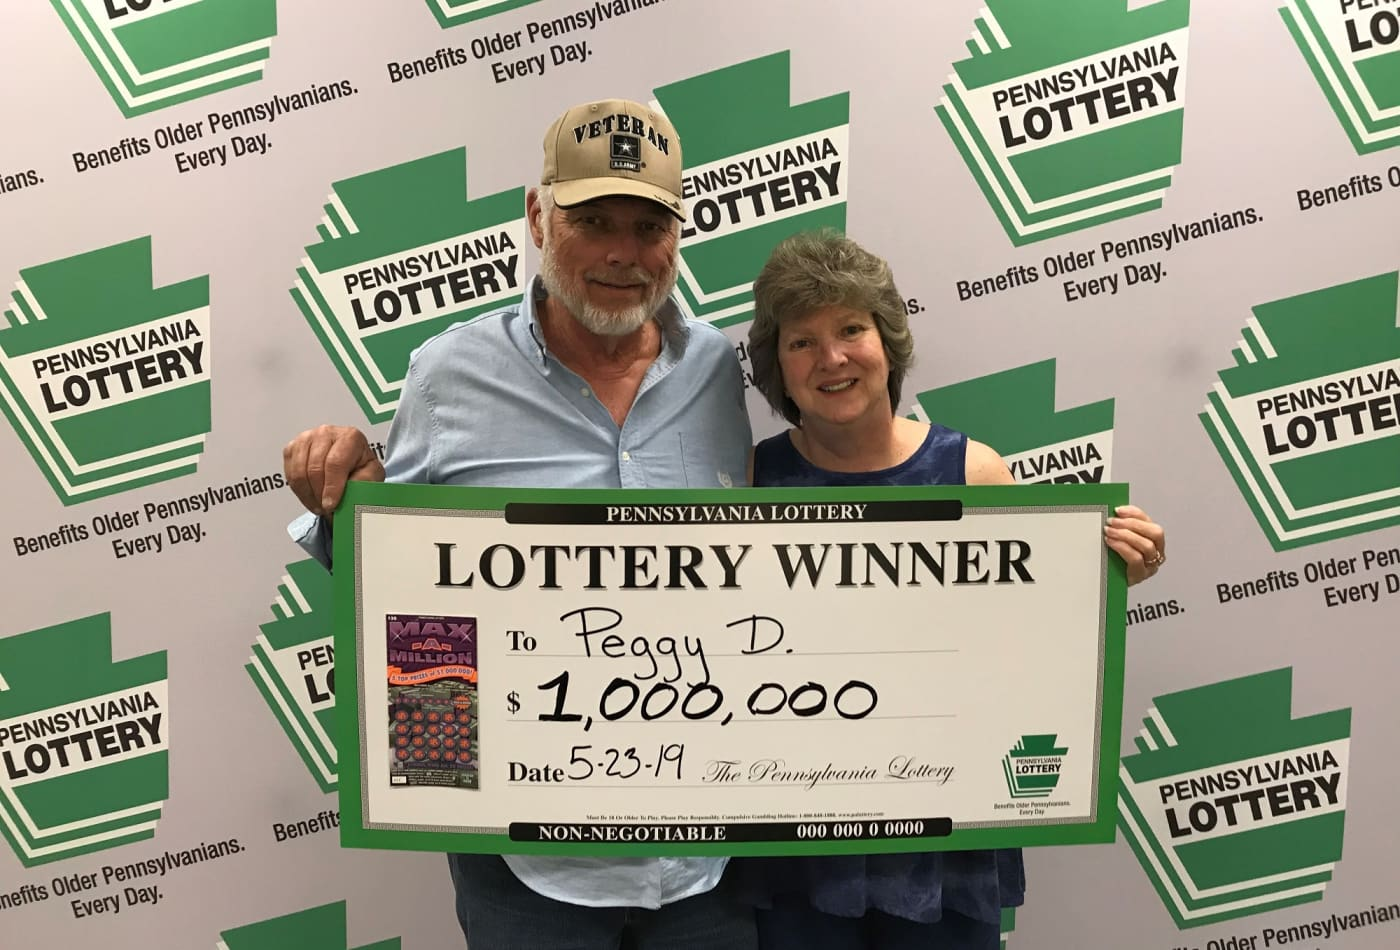 PA Woman won over $1 million with two lottery tickets from